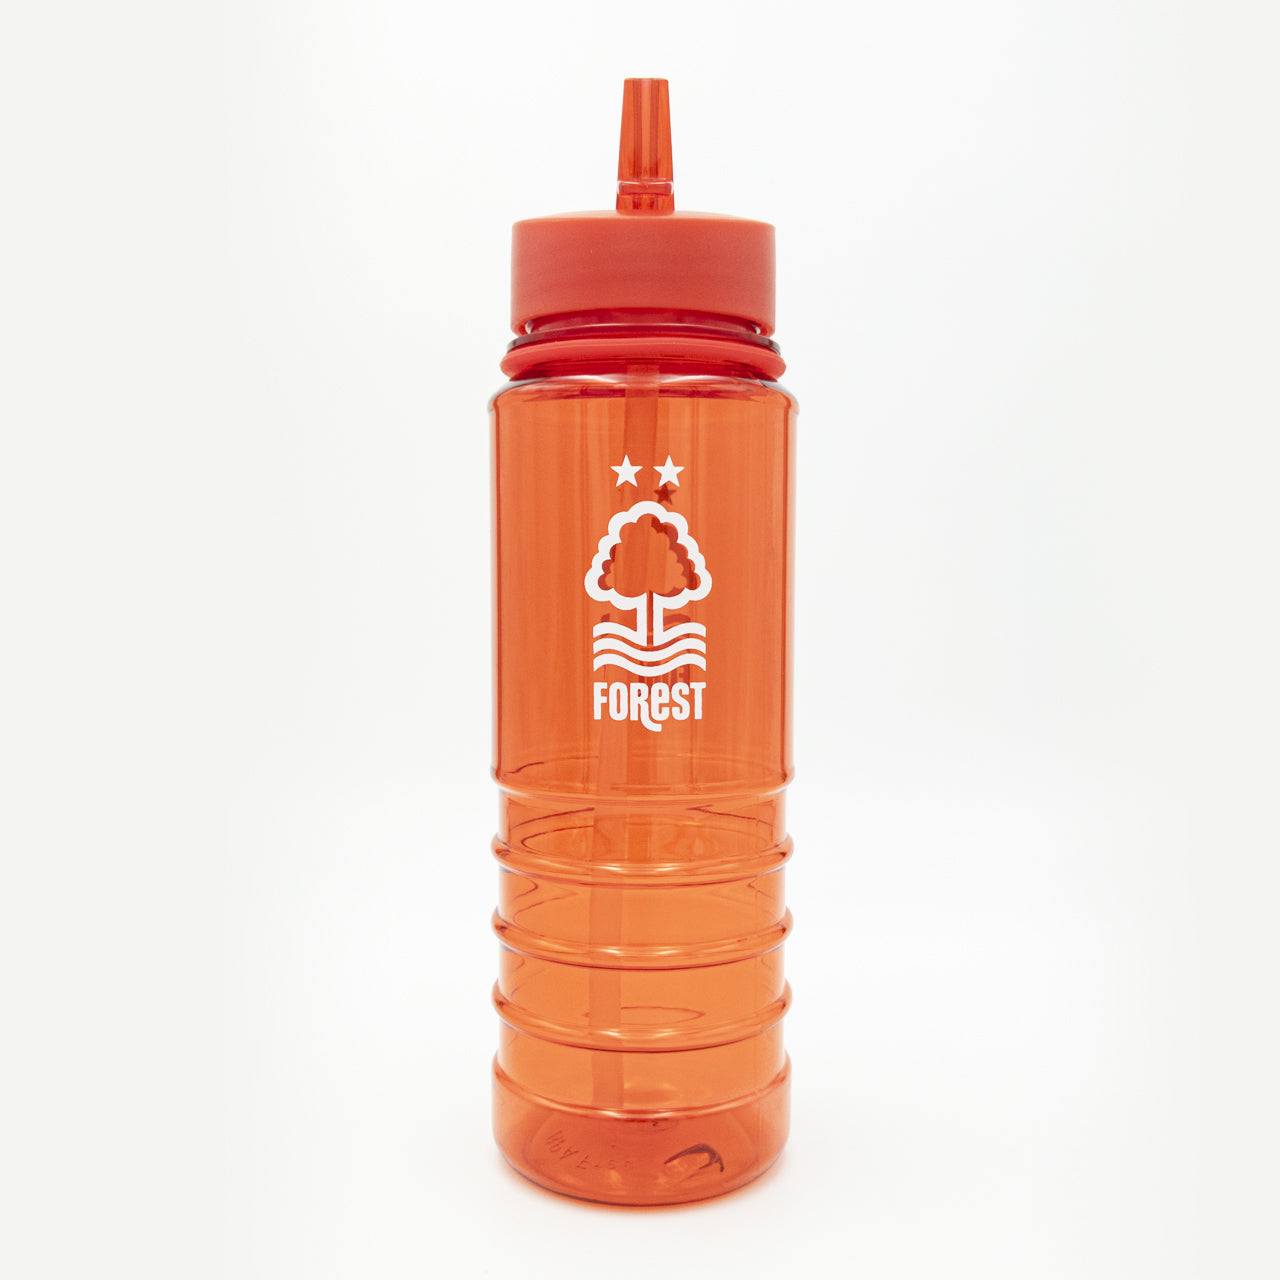 NFFC Ripple Spout Top Bottle